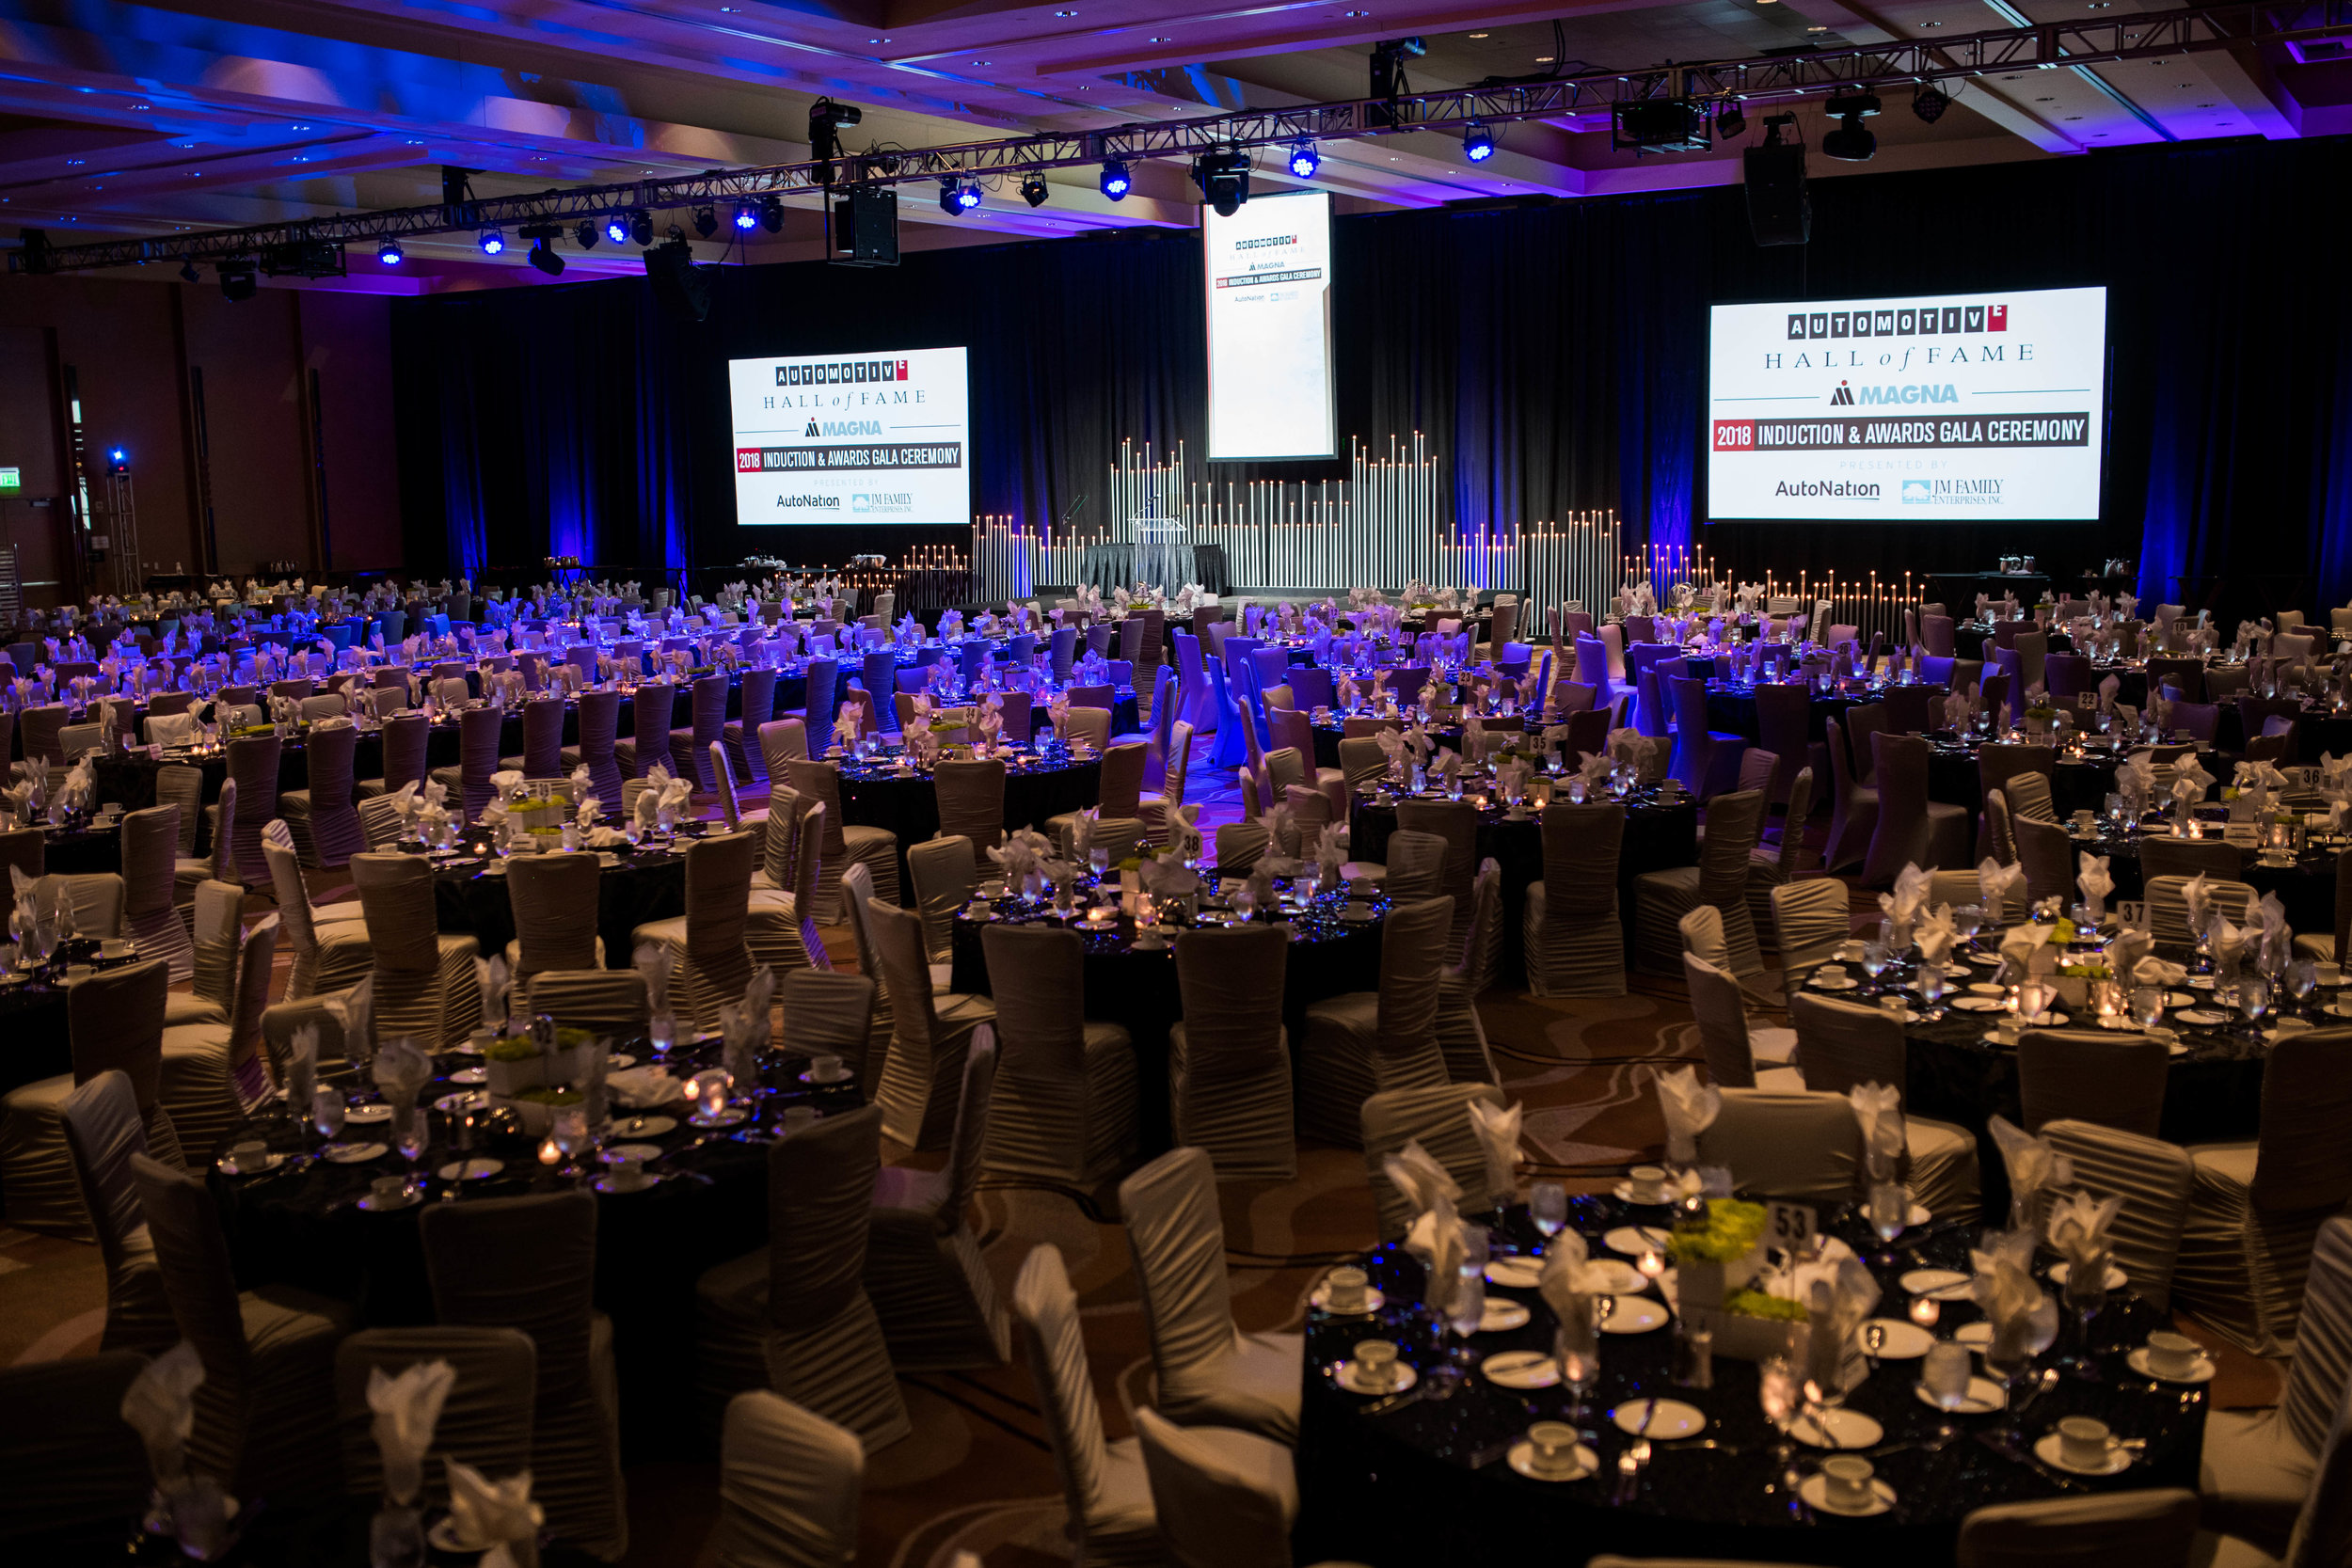 Automotive hall of fame induction ceremony